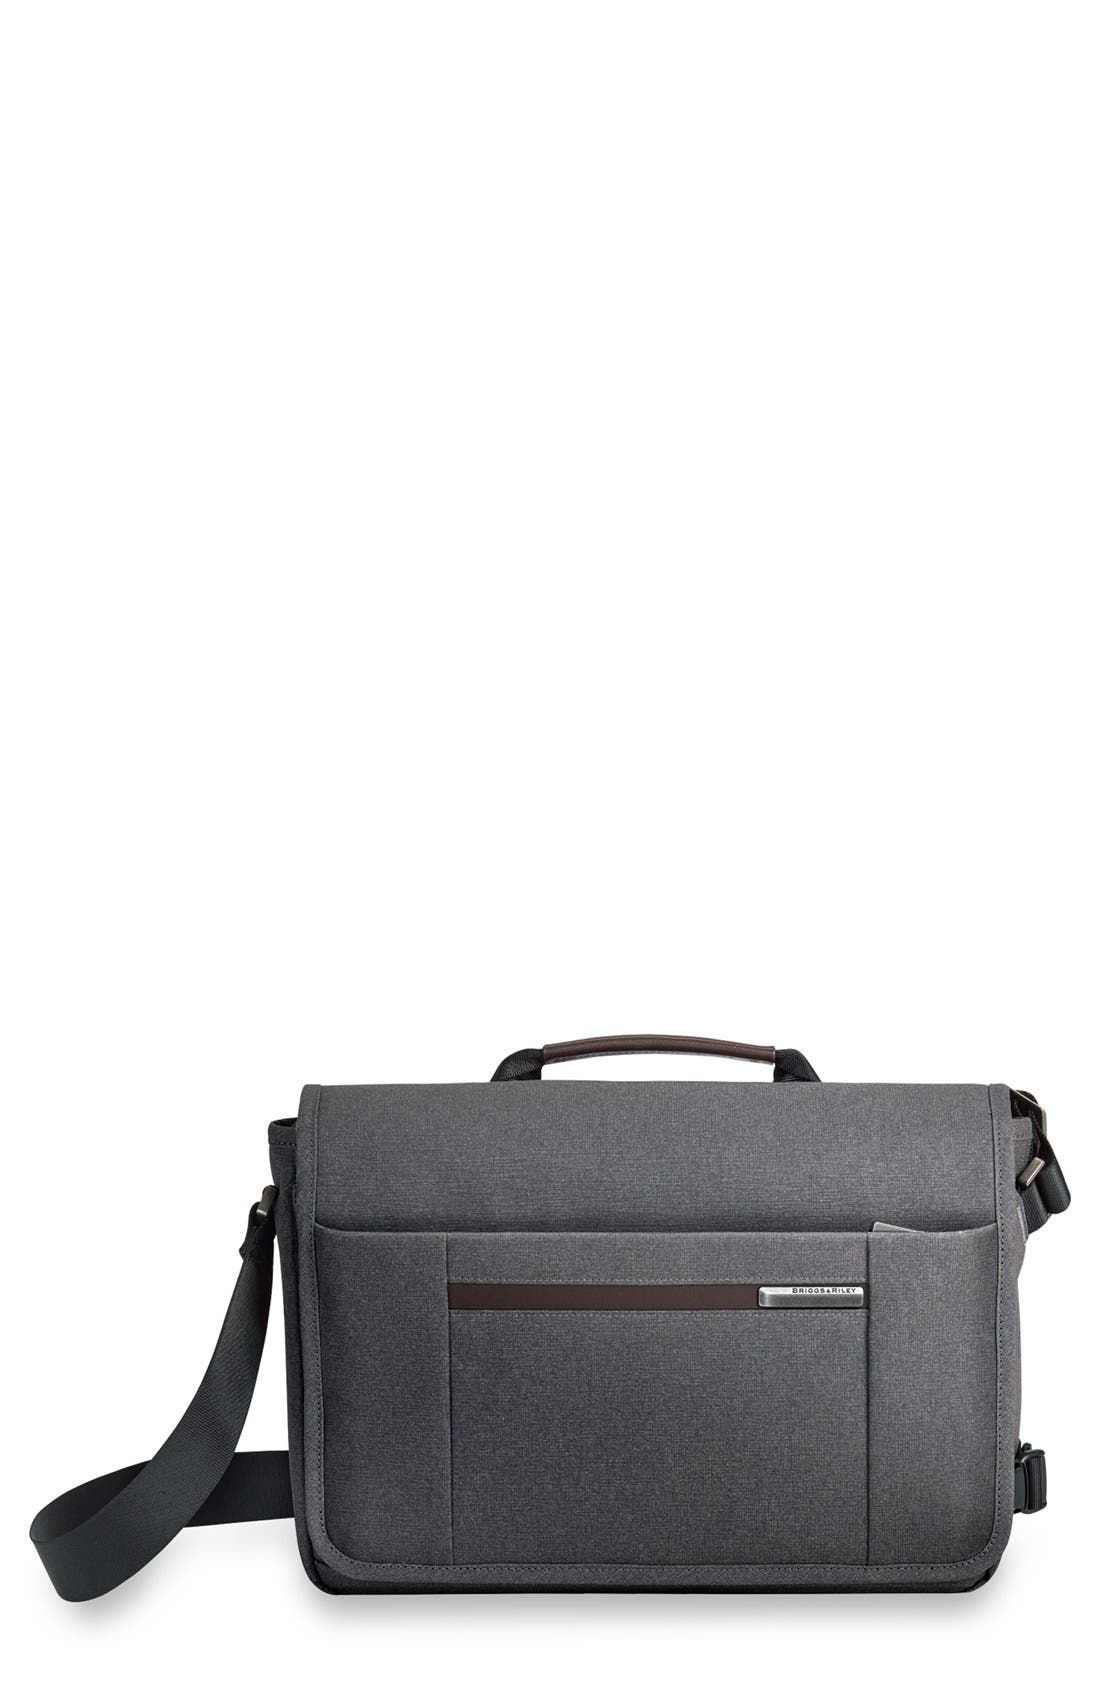 Briggs & Riley 'Kinzie Street - Micro' Messenger Bag